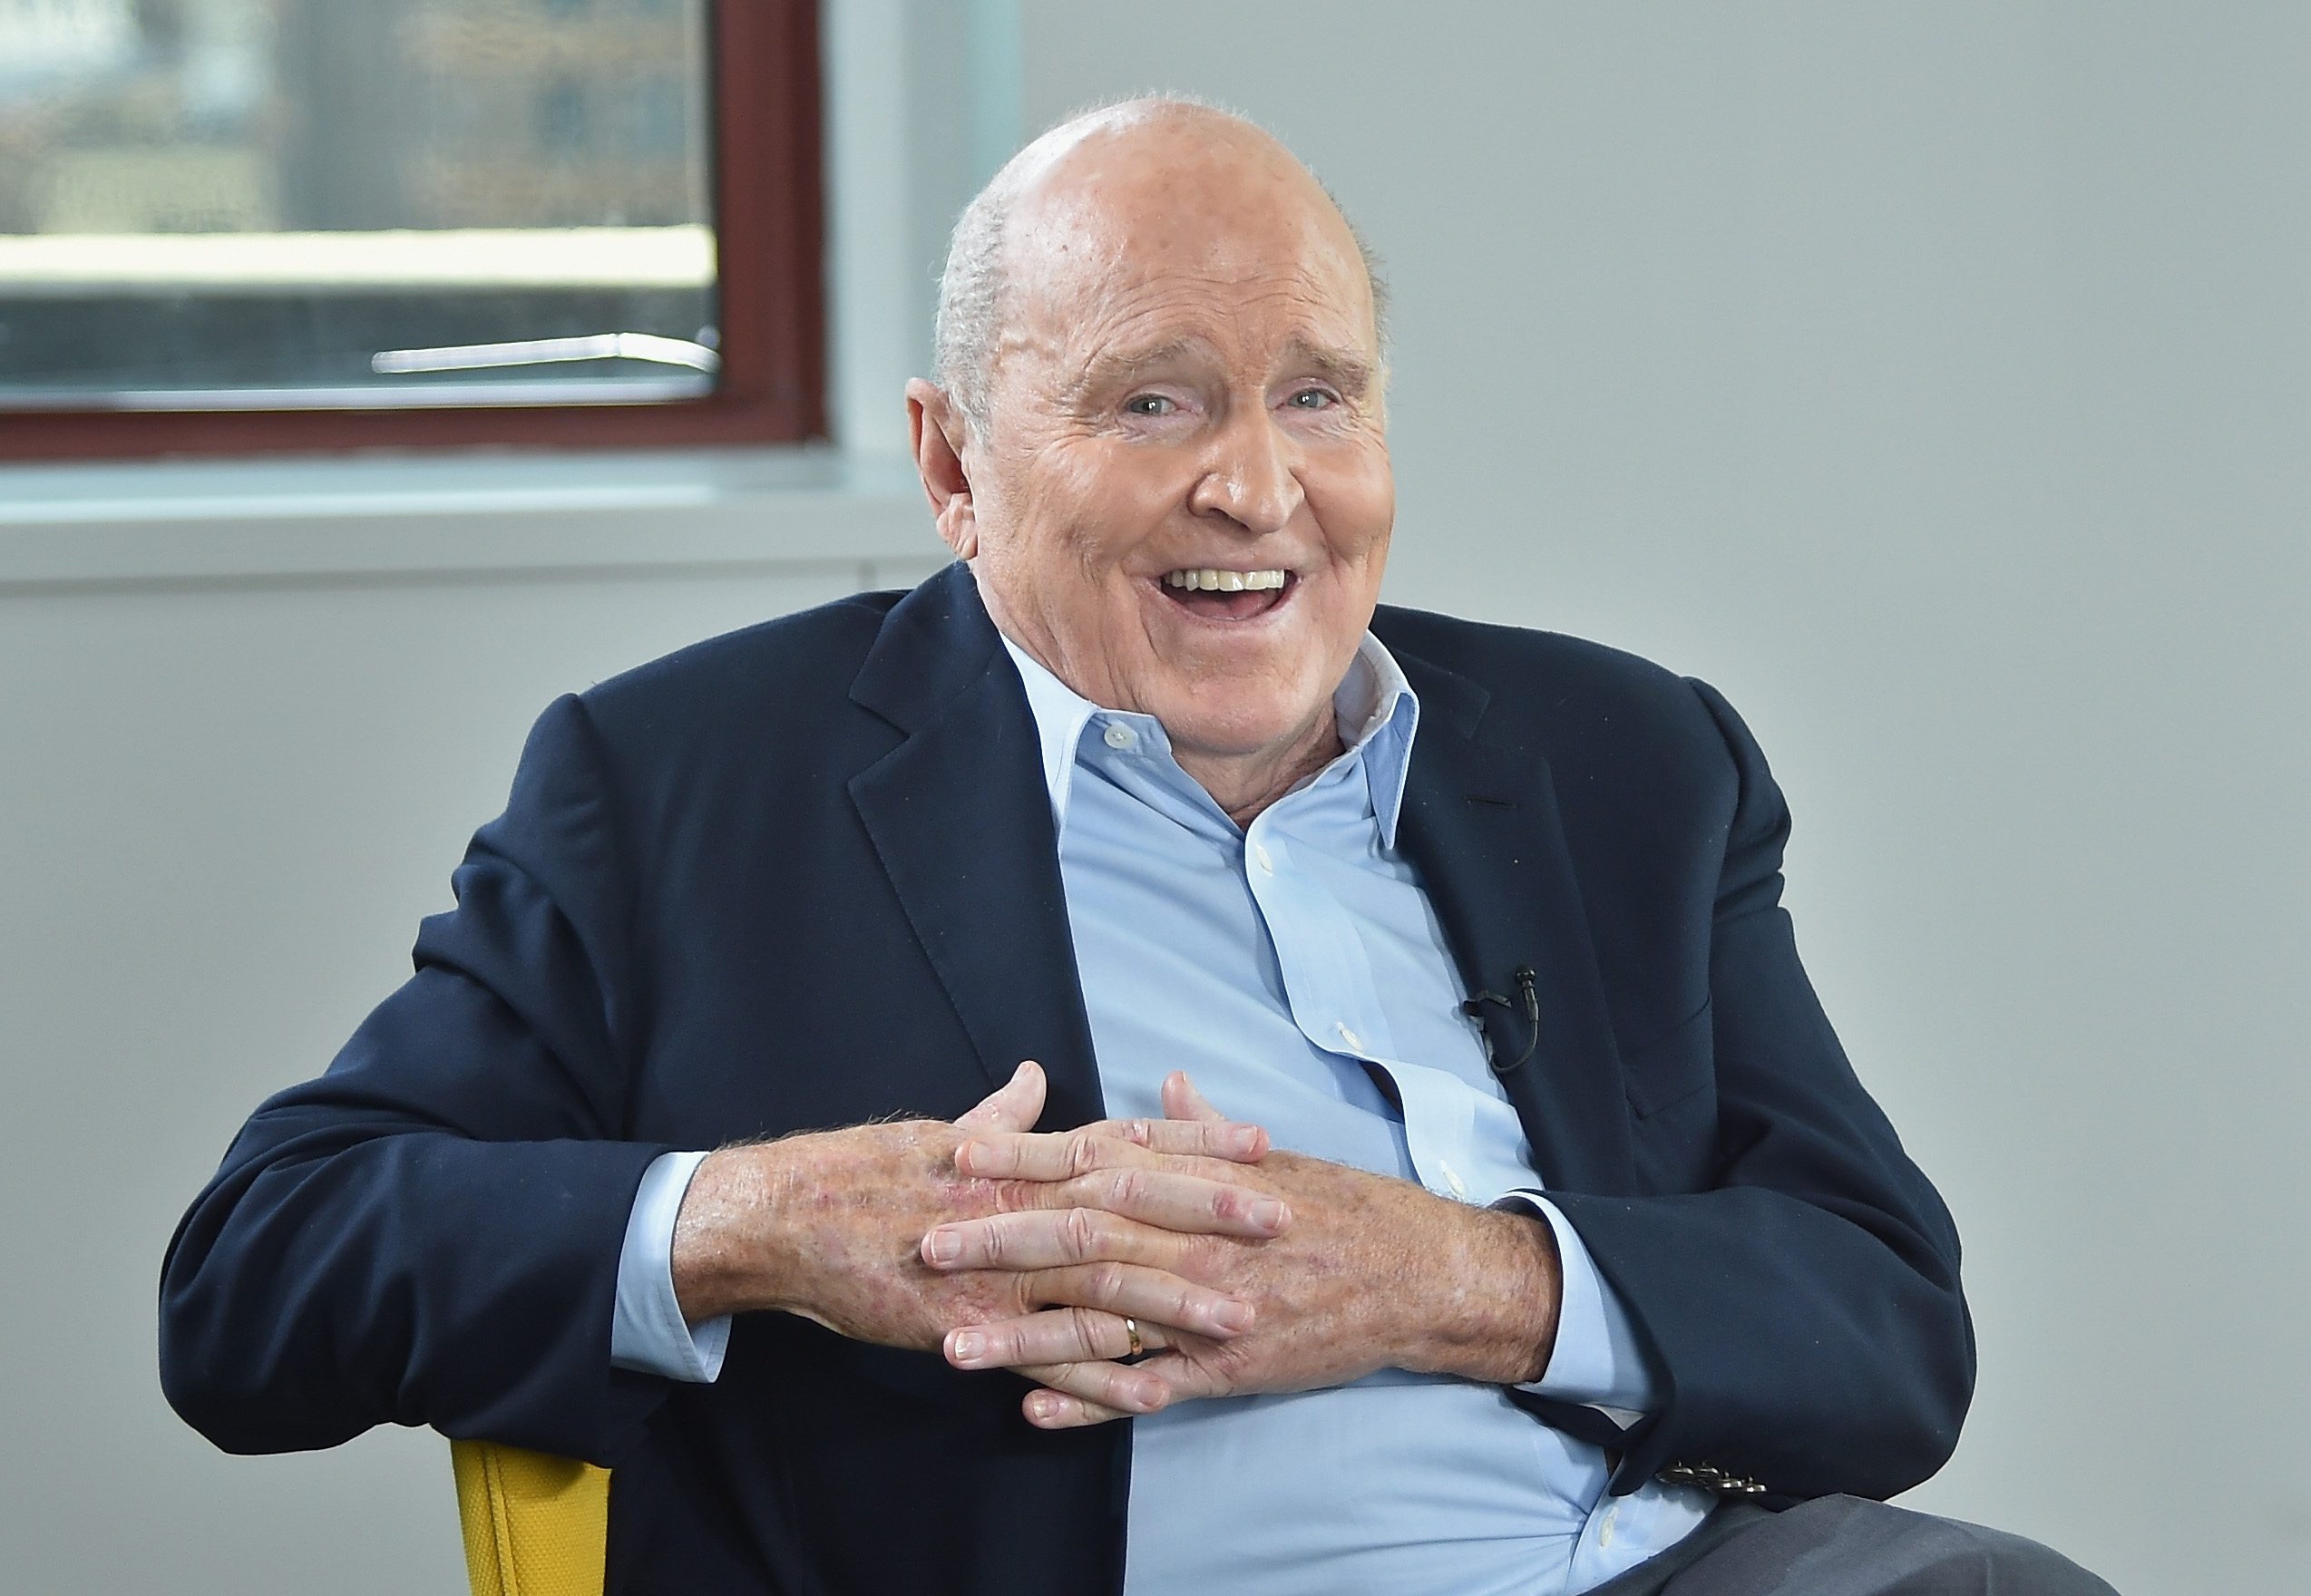 LinkedIn Executive Editor Dan Roth interviews Jack Welch at LinkedIn Studios on March 11, 2015 in New York City.